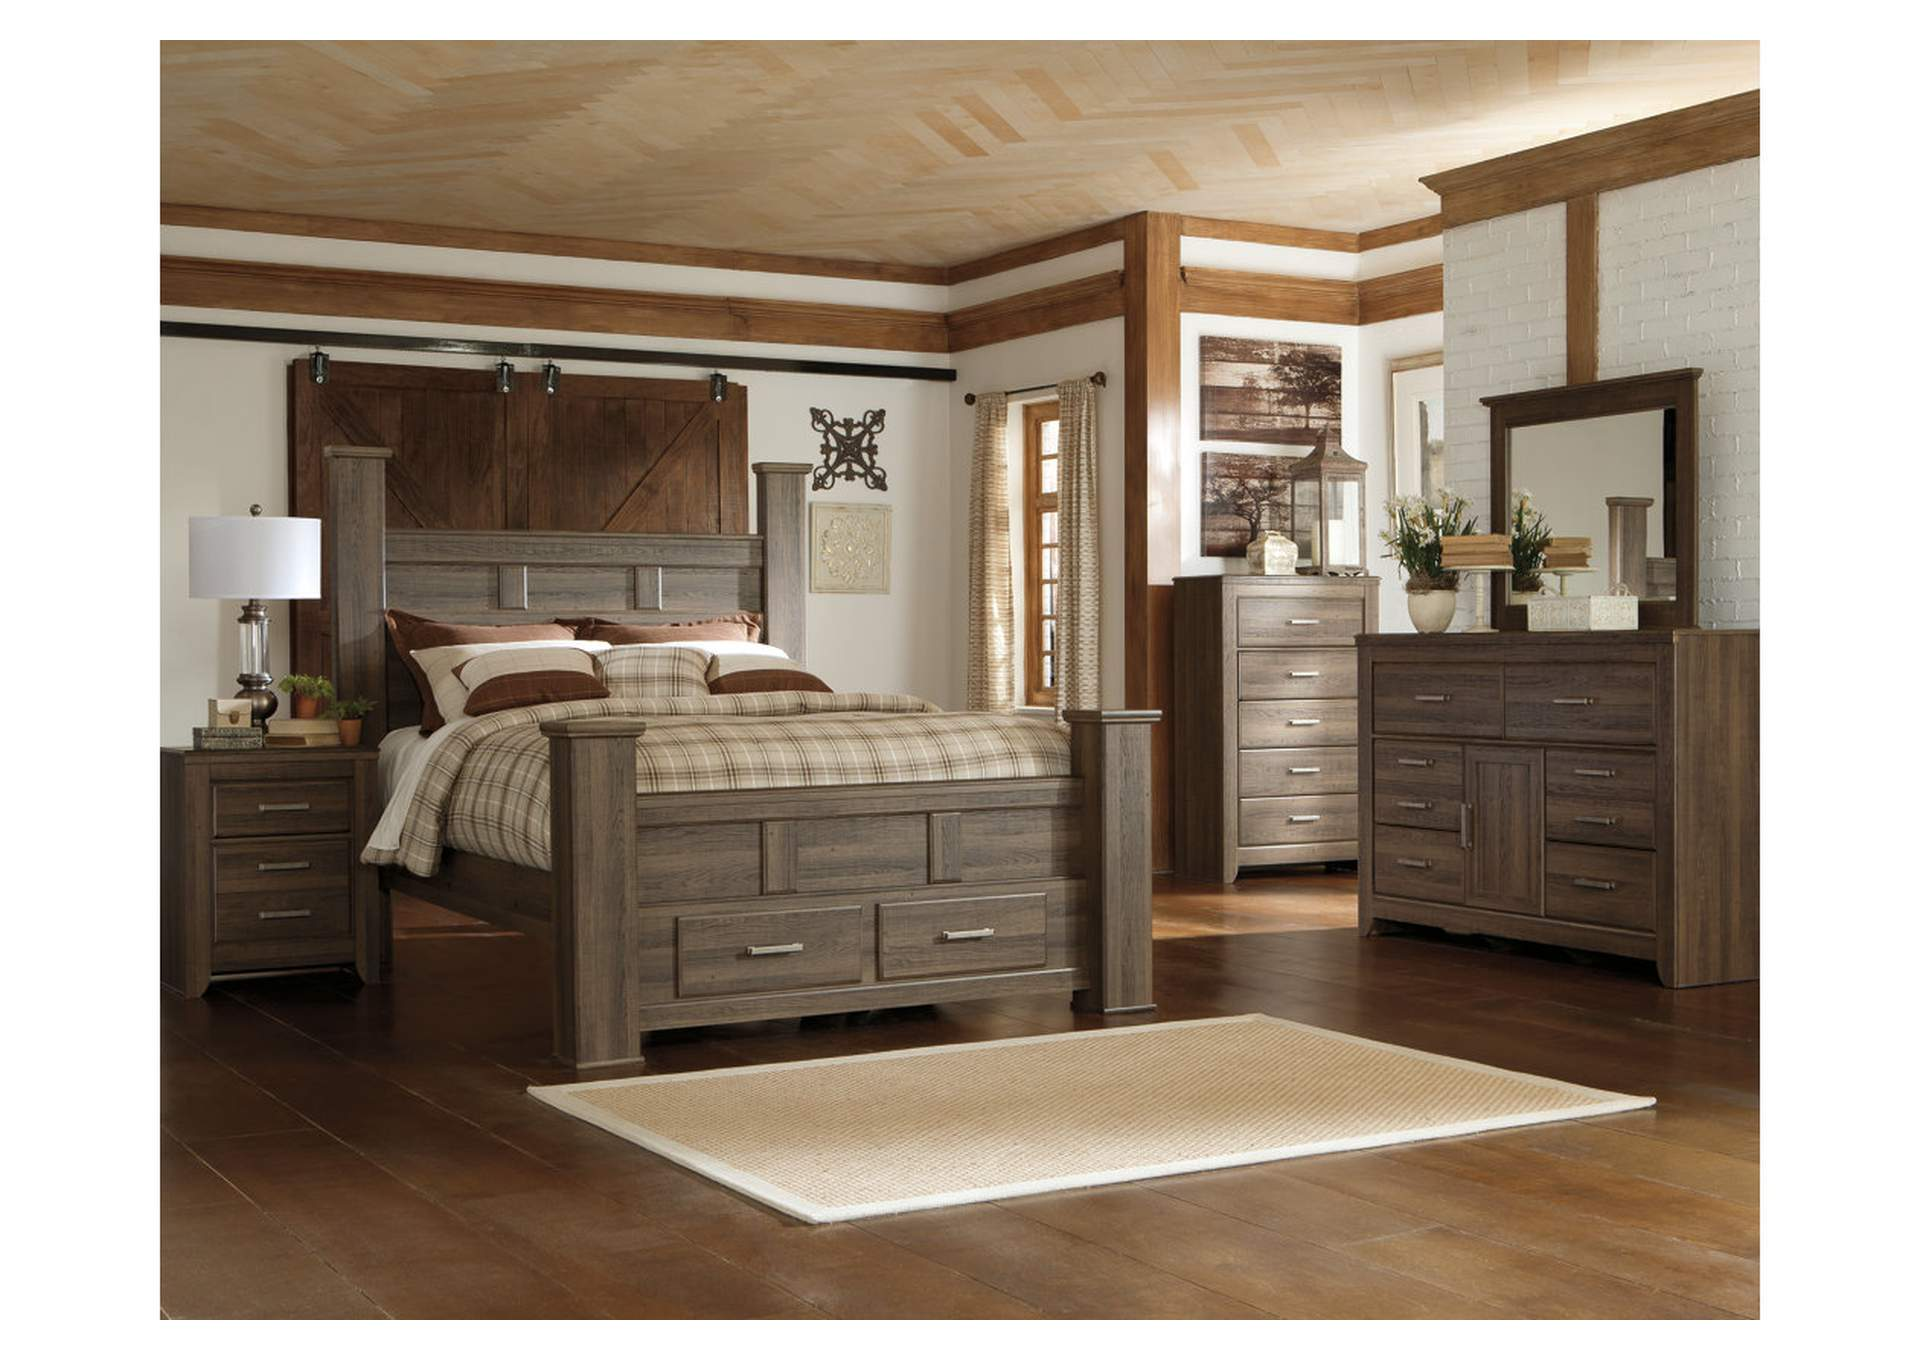 Juararo King Poster Storage Bed w/Dresser, Mirror & Drawer Chest,Signature Design By Ashley